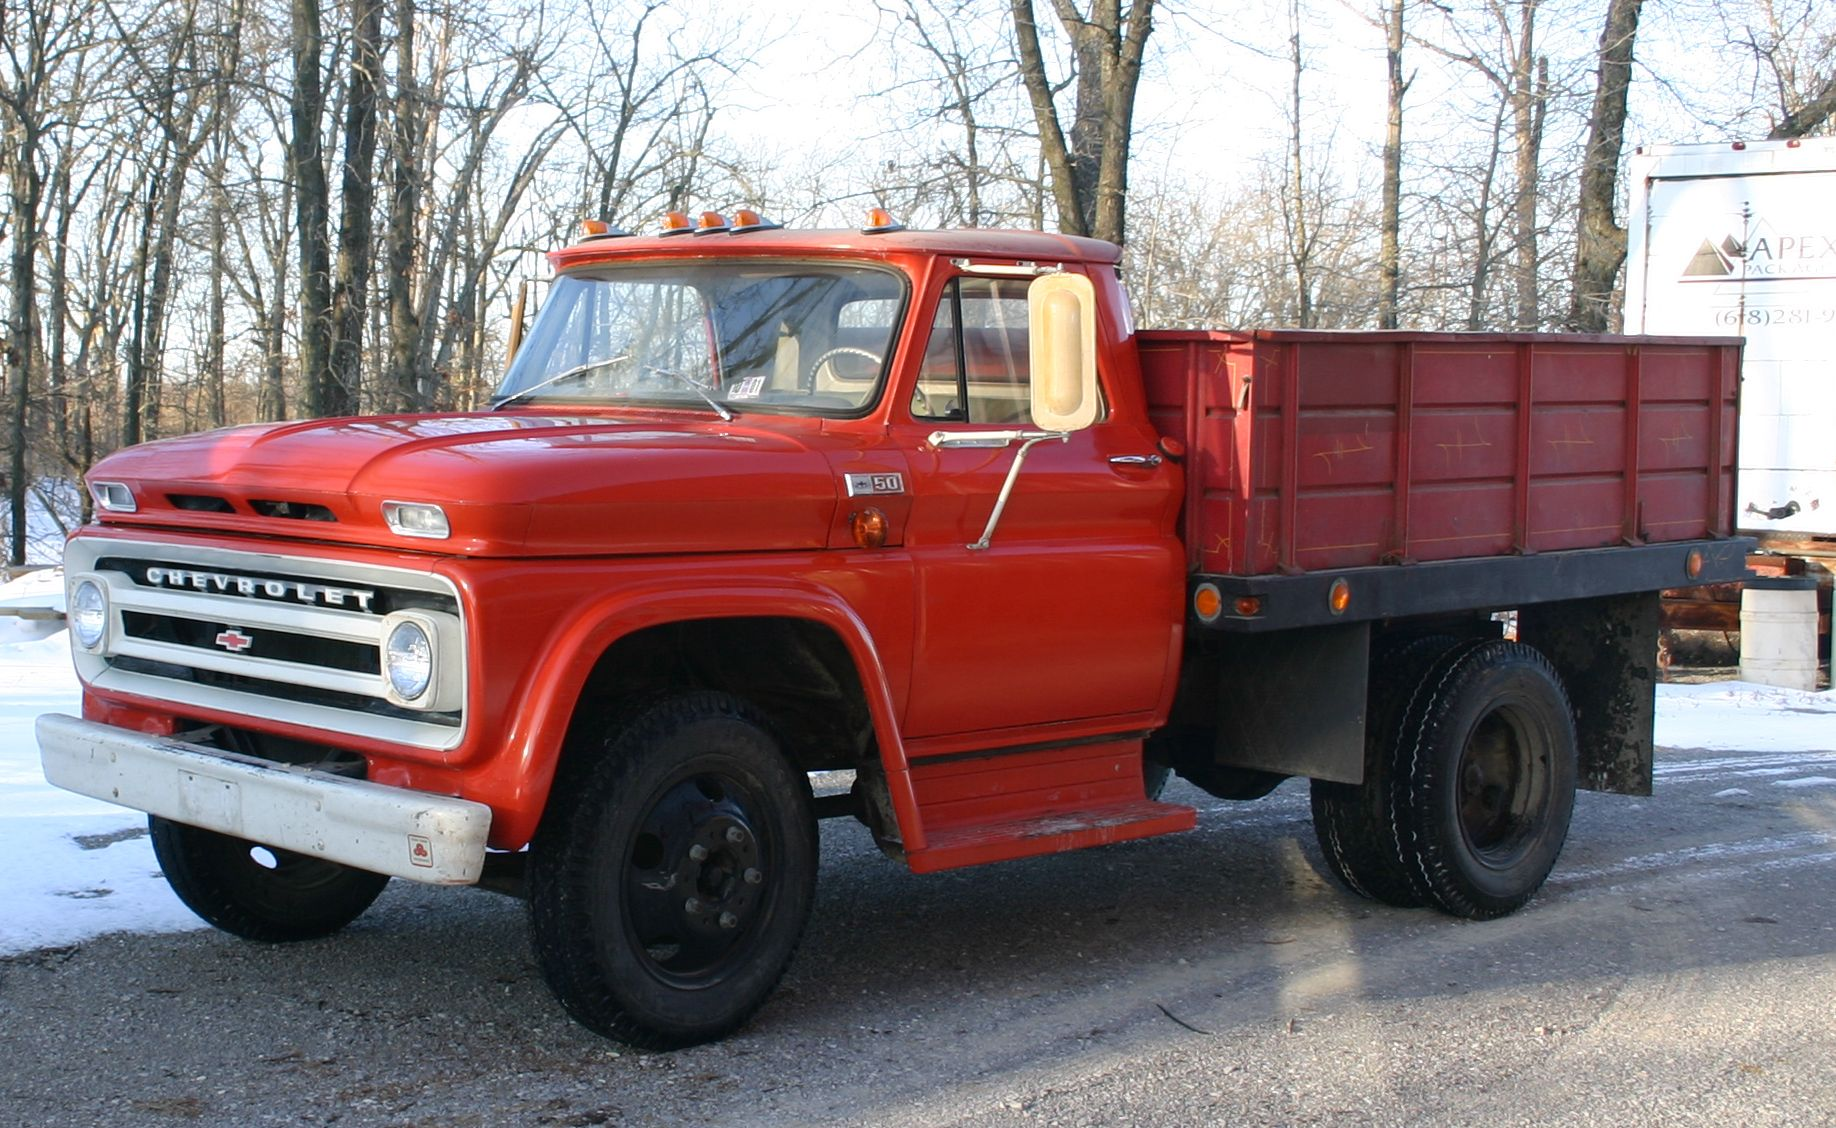 1965 Chevrolet C50 stake bed. Gasoline Chevy 396. 5 speed